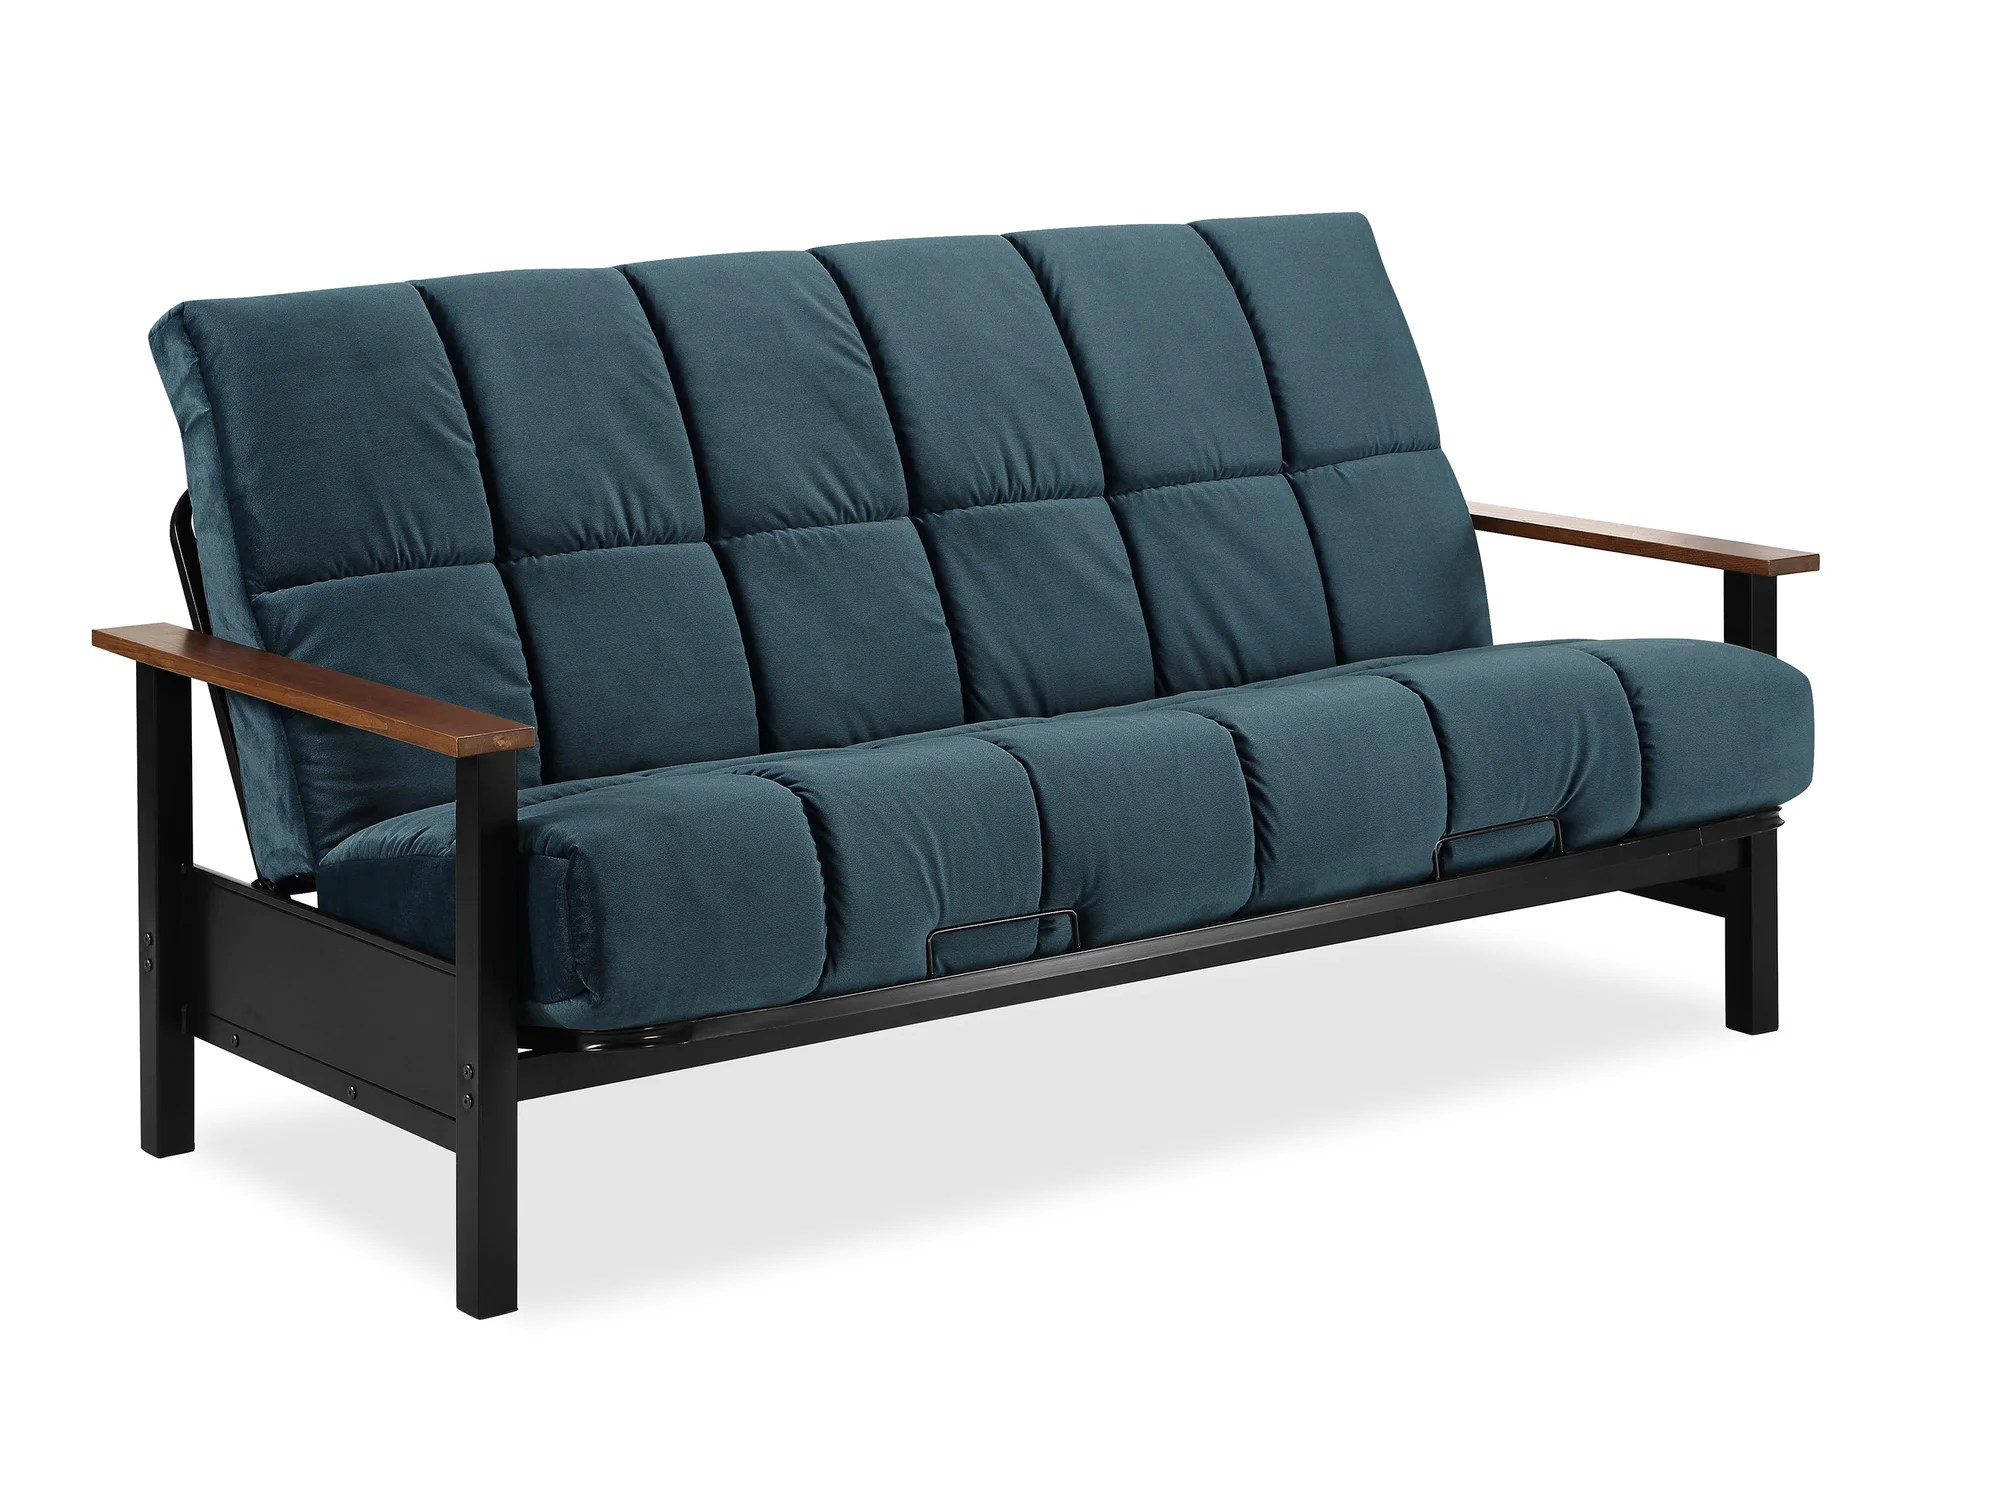 sofa sleeper phoenix crate and barrel bed futon stores in